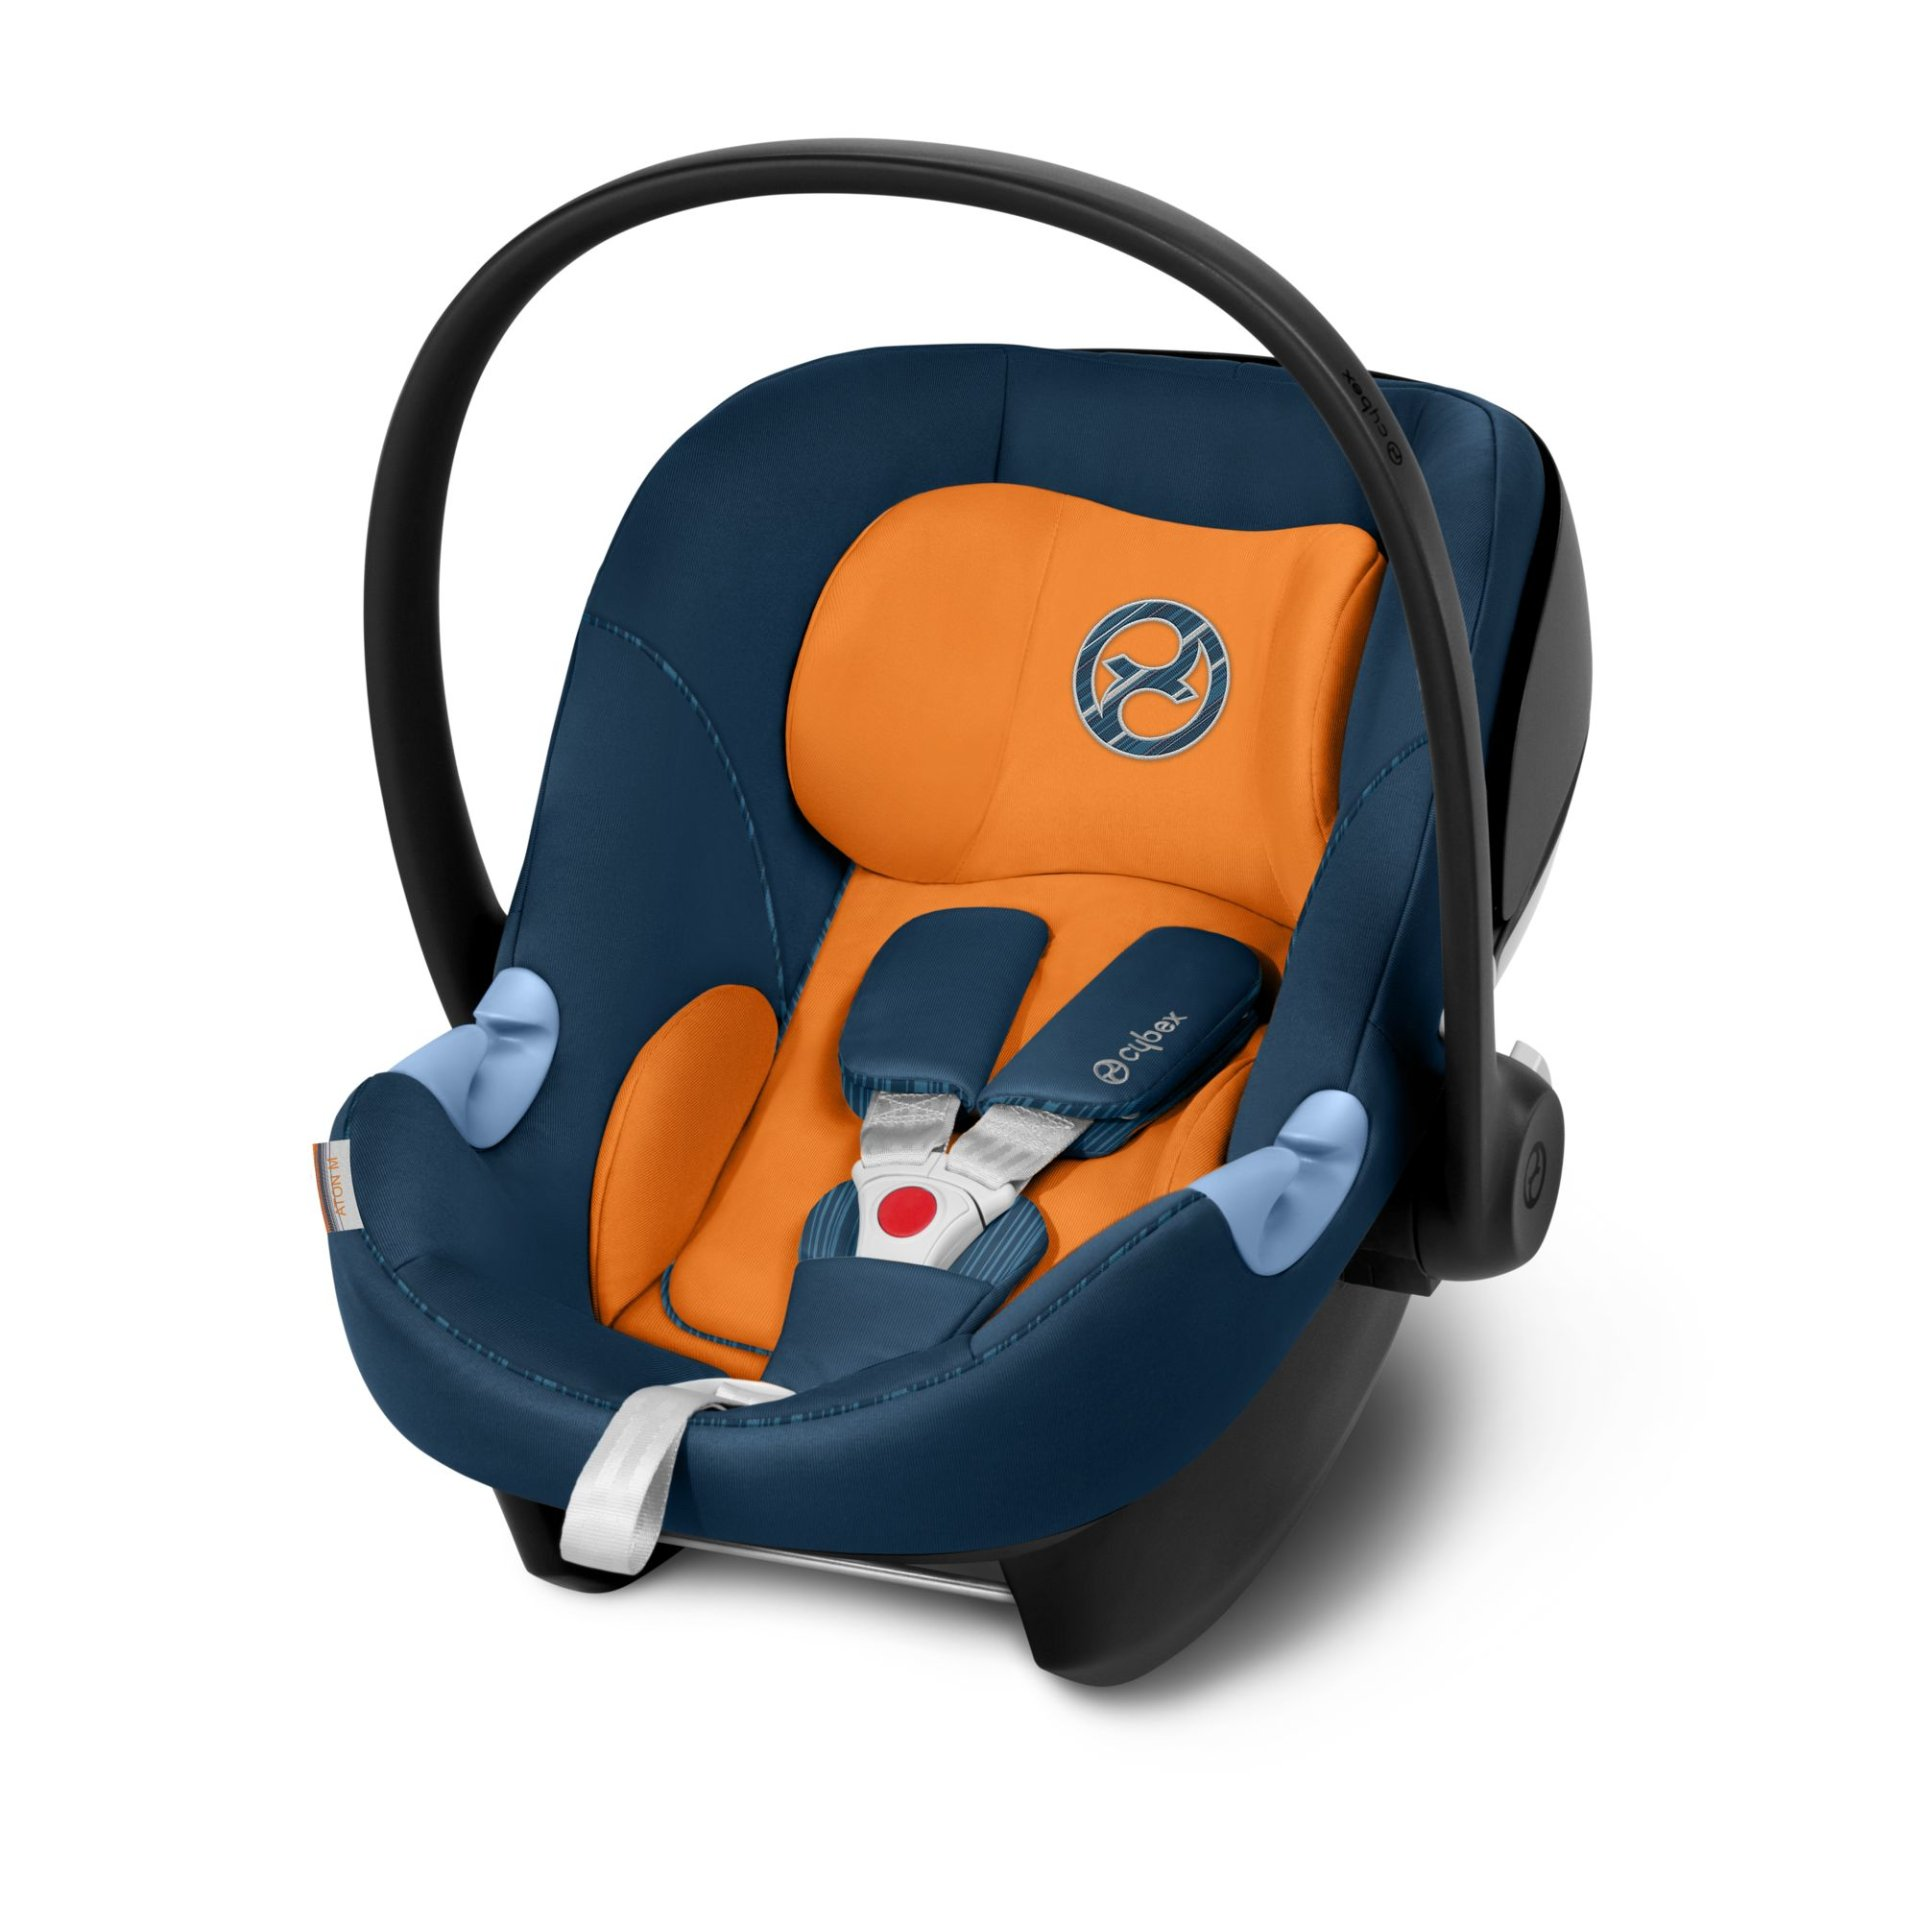 cybex infant car seat aton m 2019 tropical blue navy. Black Bedroom Furniture Sets. Home Design Ideas